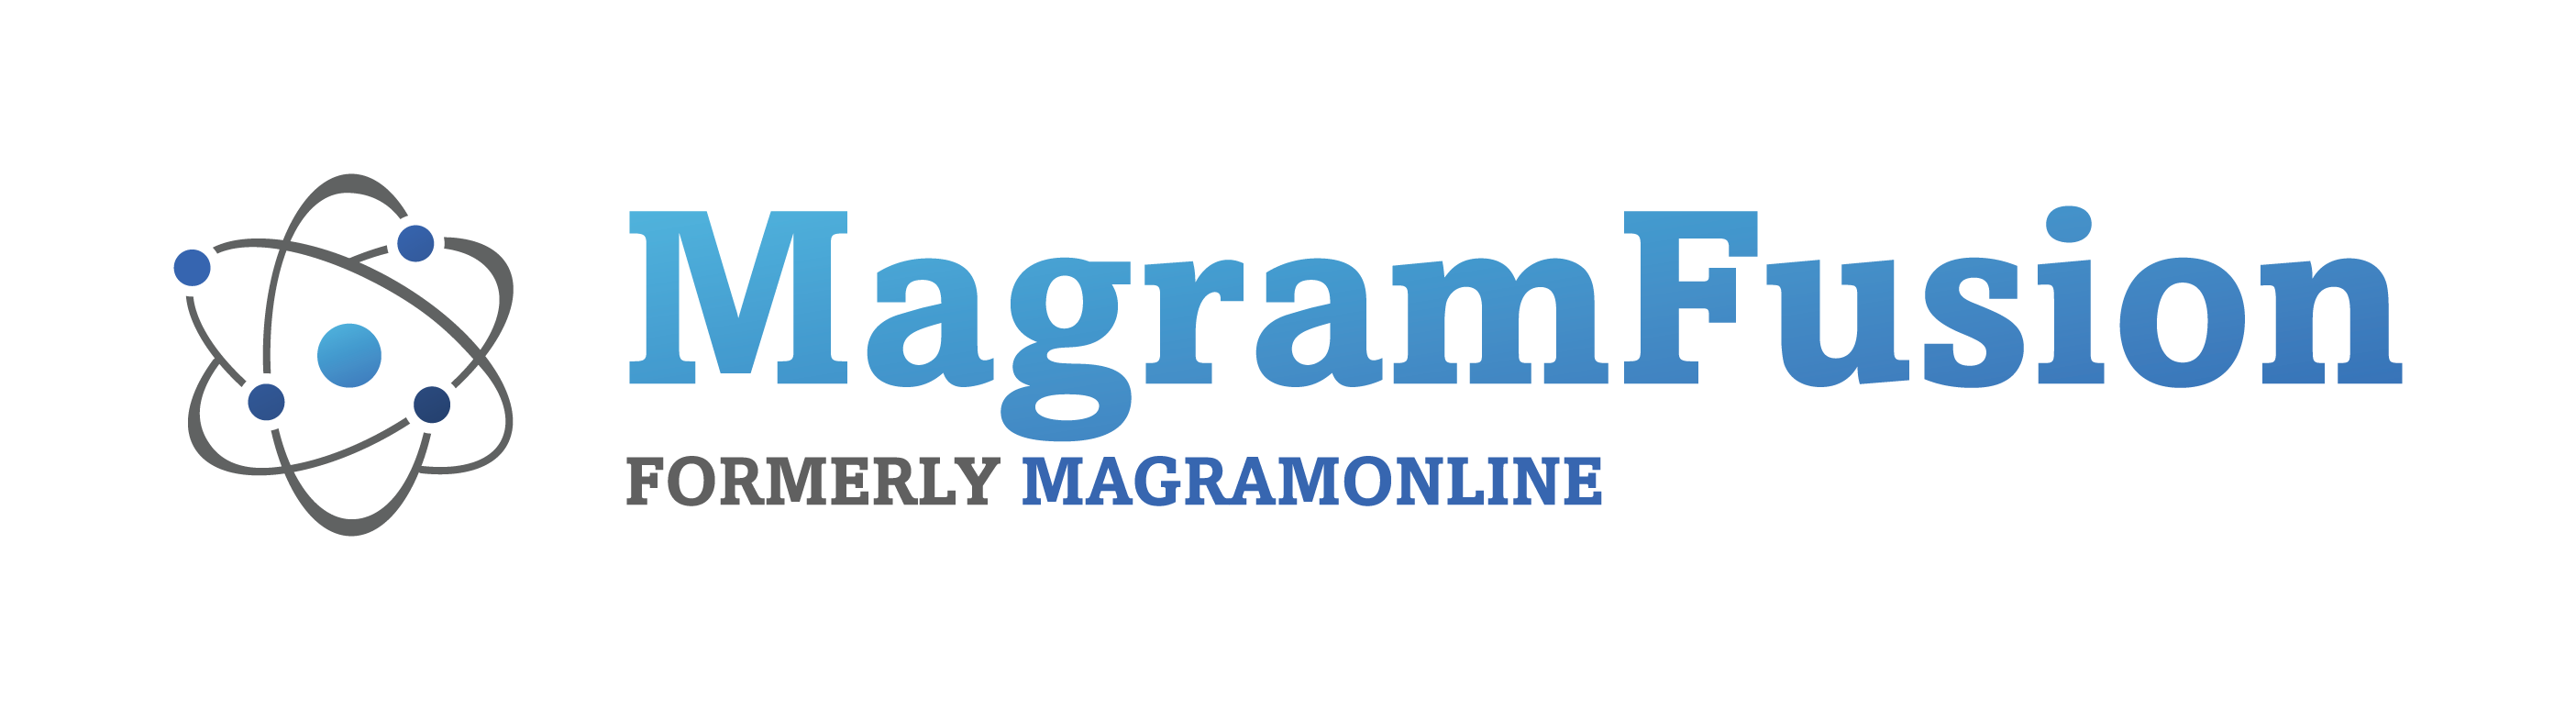 MagramFusion Formerly MagramOnline